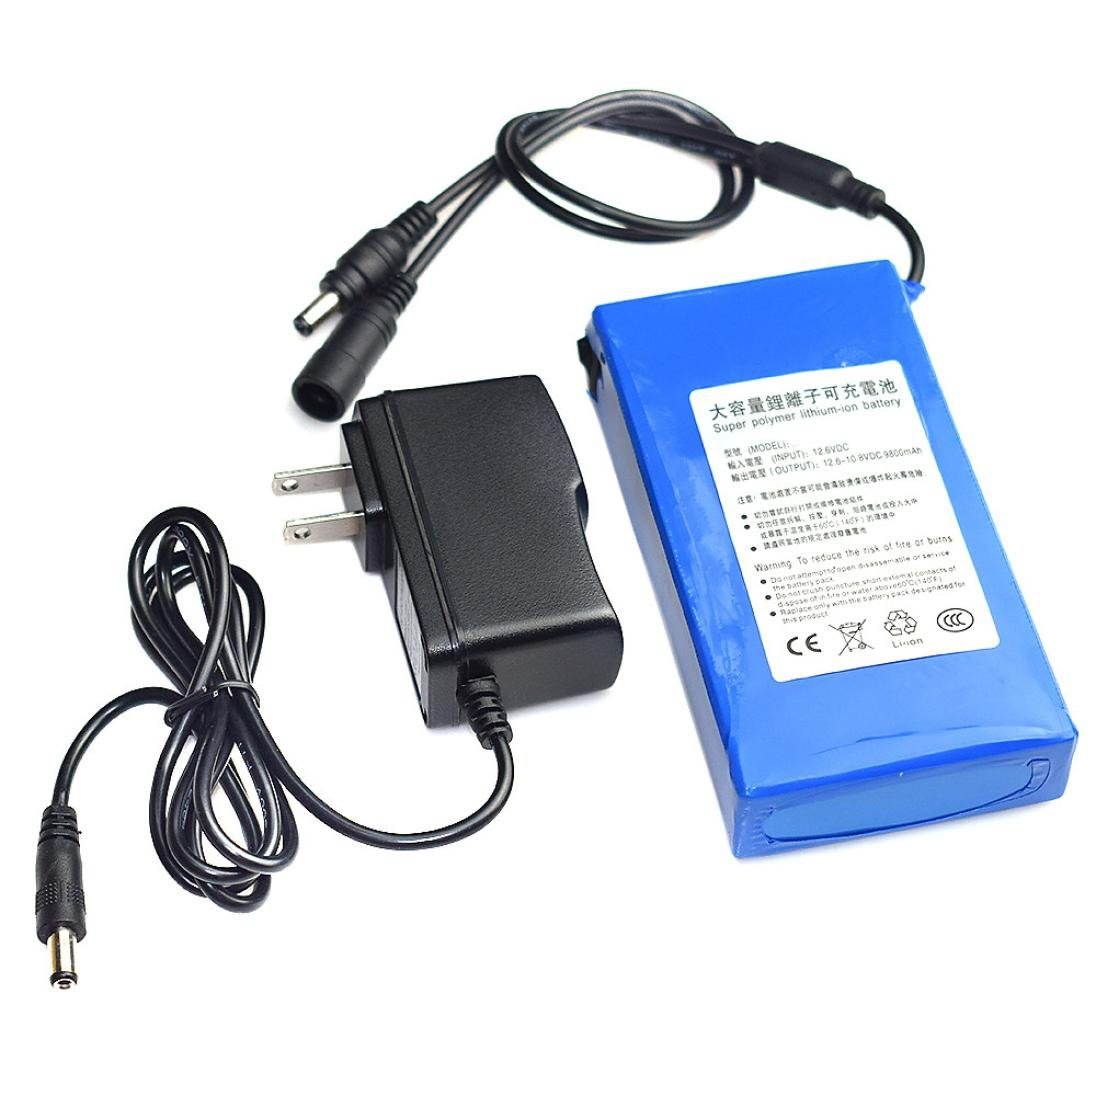 Sonmer DC 12V Super Rechargeable Li-ion Lithium Battery Pack,with US Plug (6800mAh)